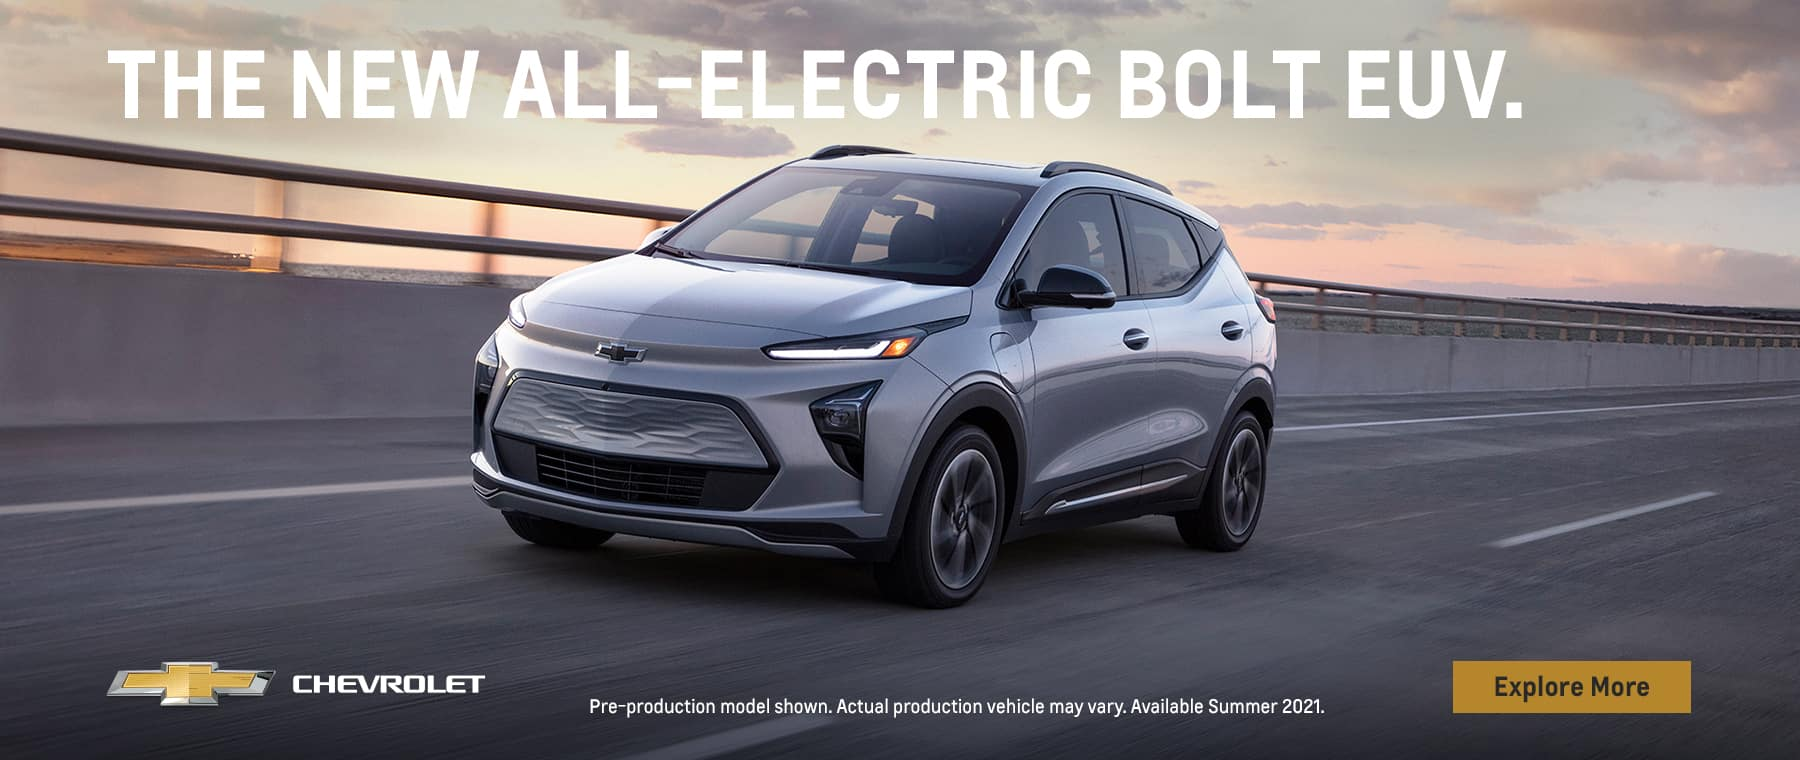 The new all-electric Bolt EUV.